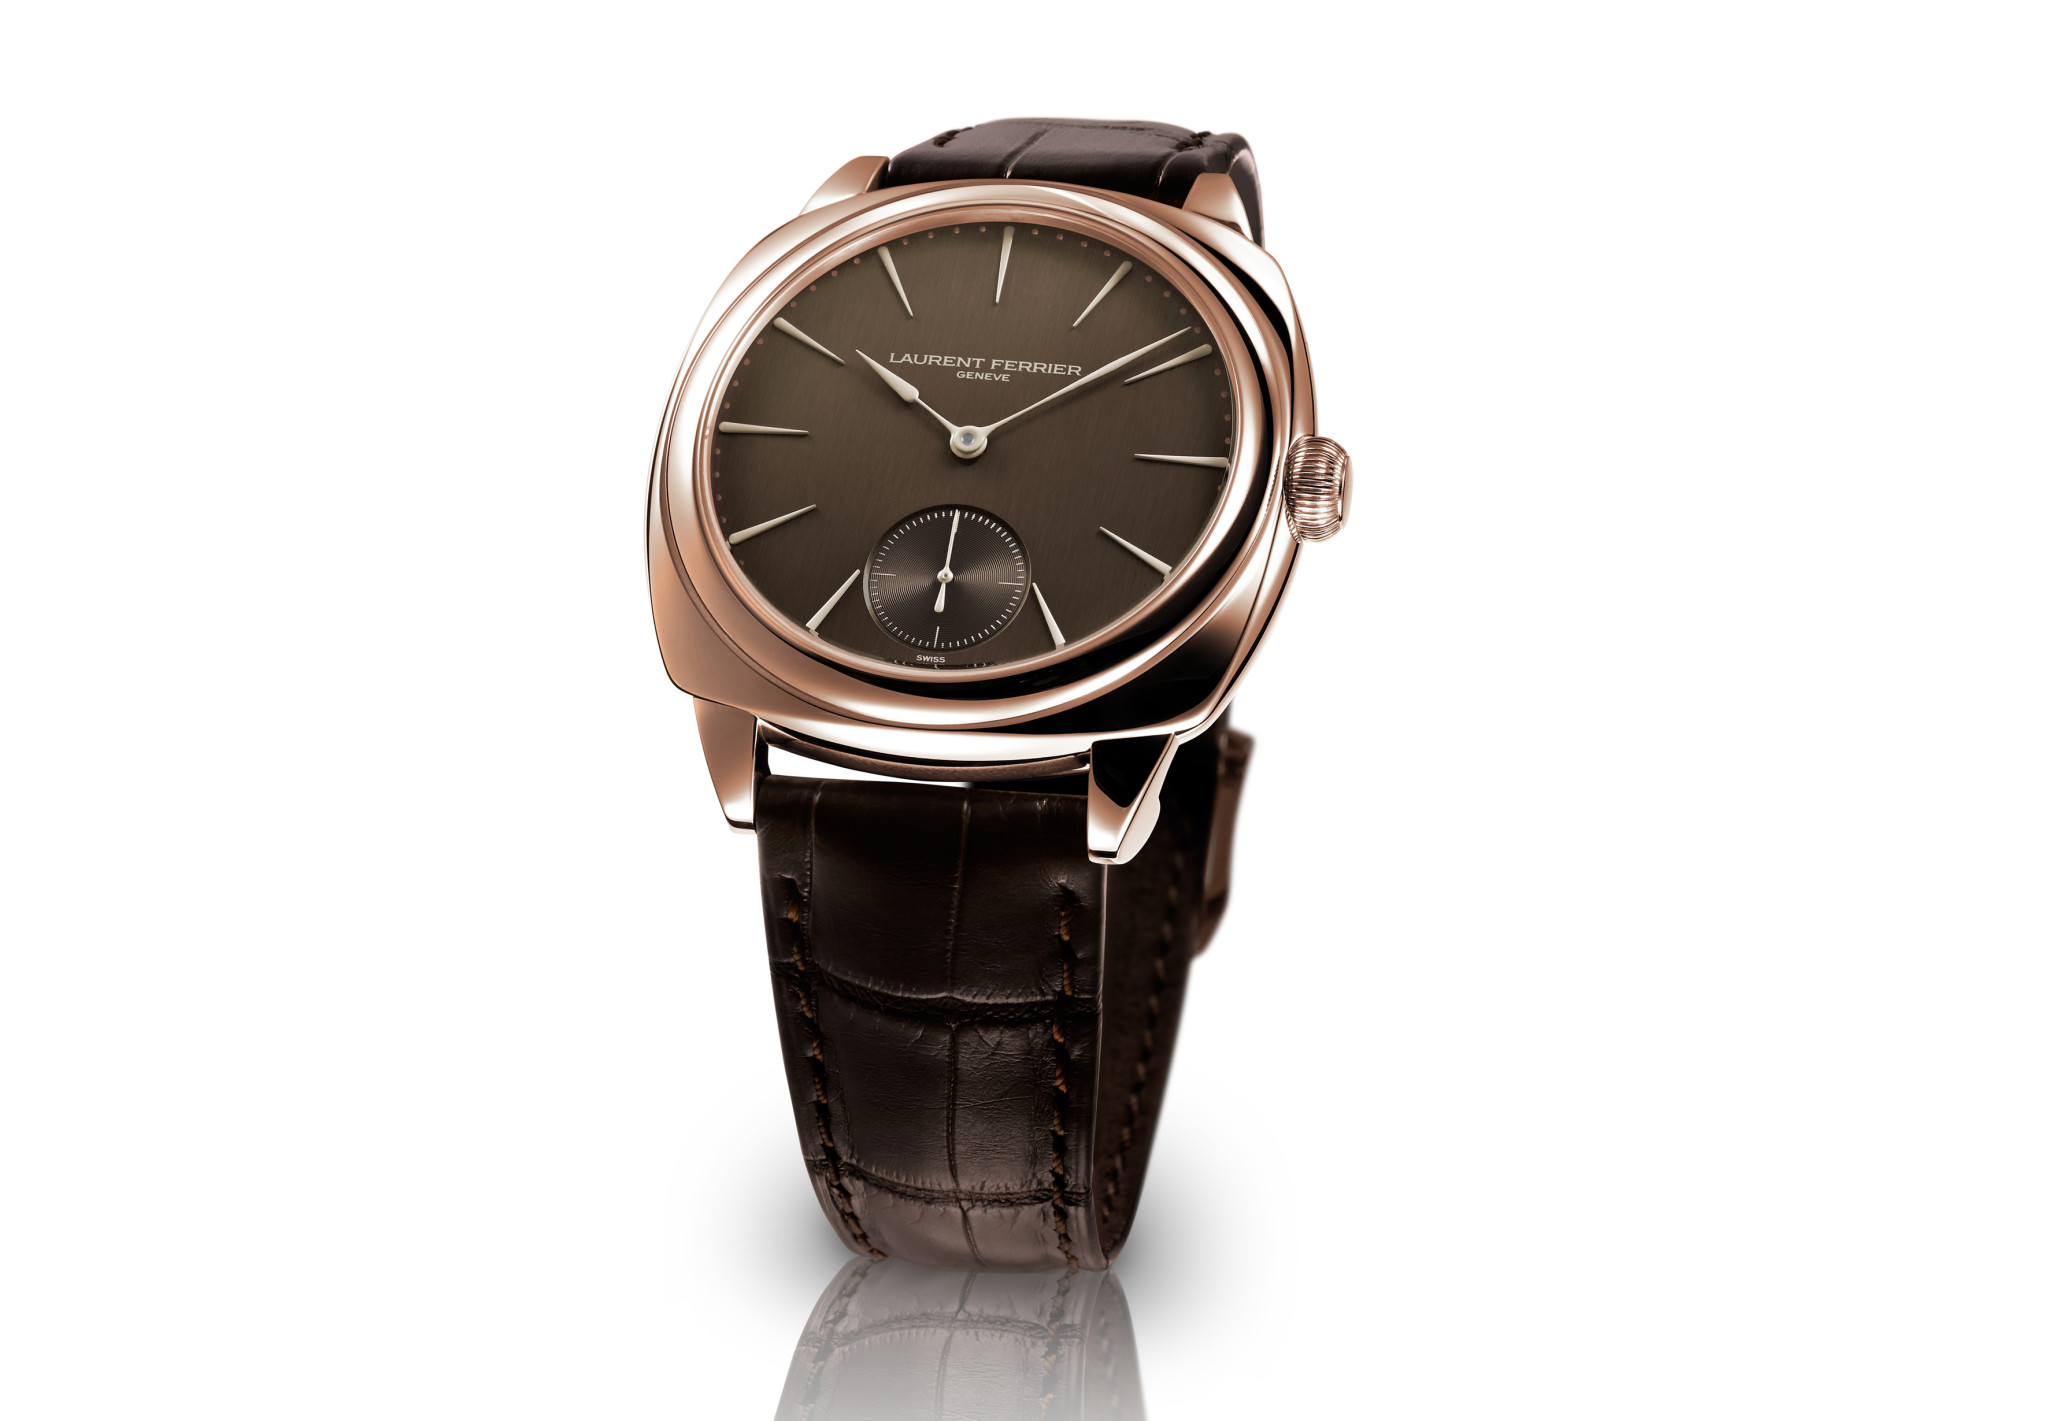 Laurent Ferrier GALET SQUARE CHOCOLATE 5TH ANNIVERSARY